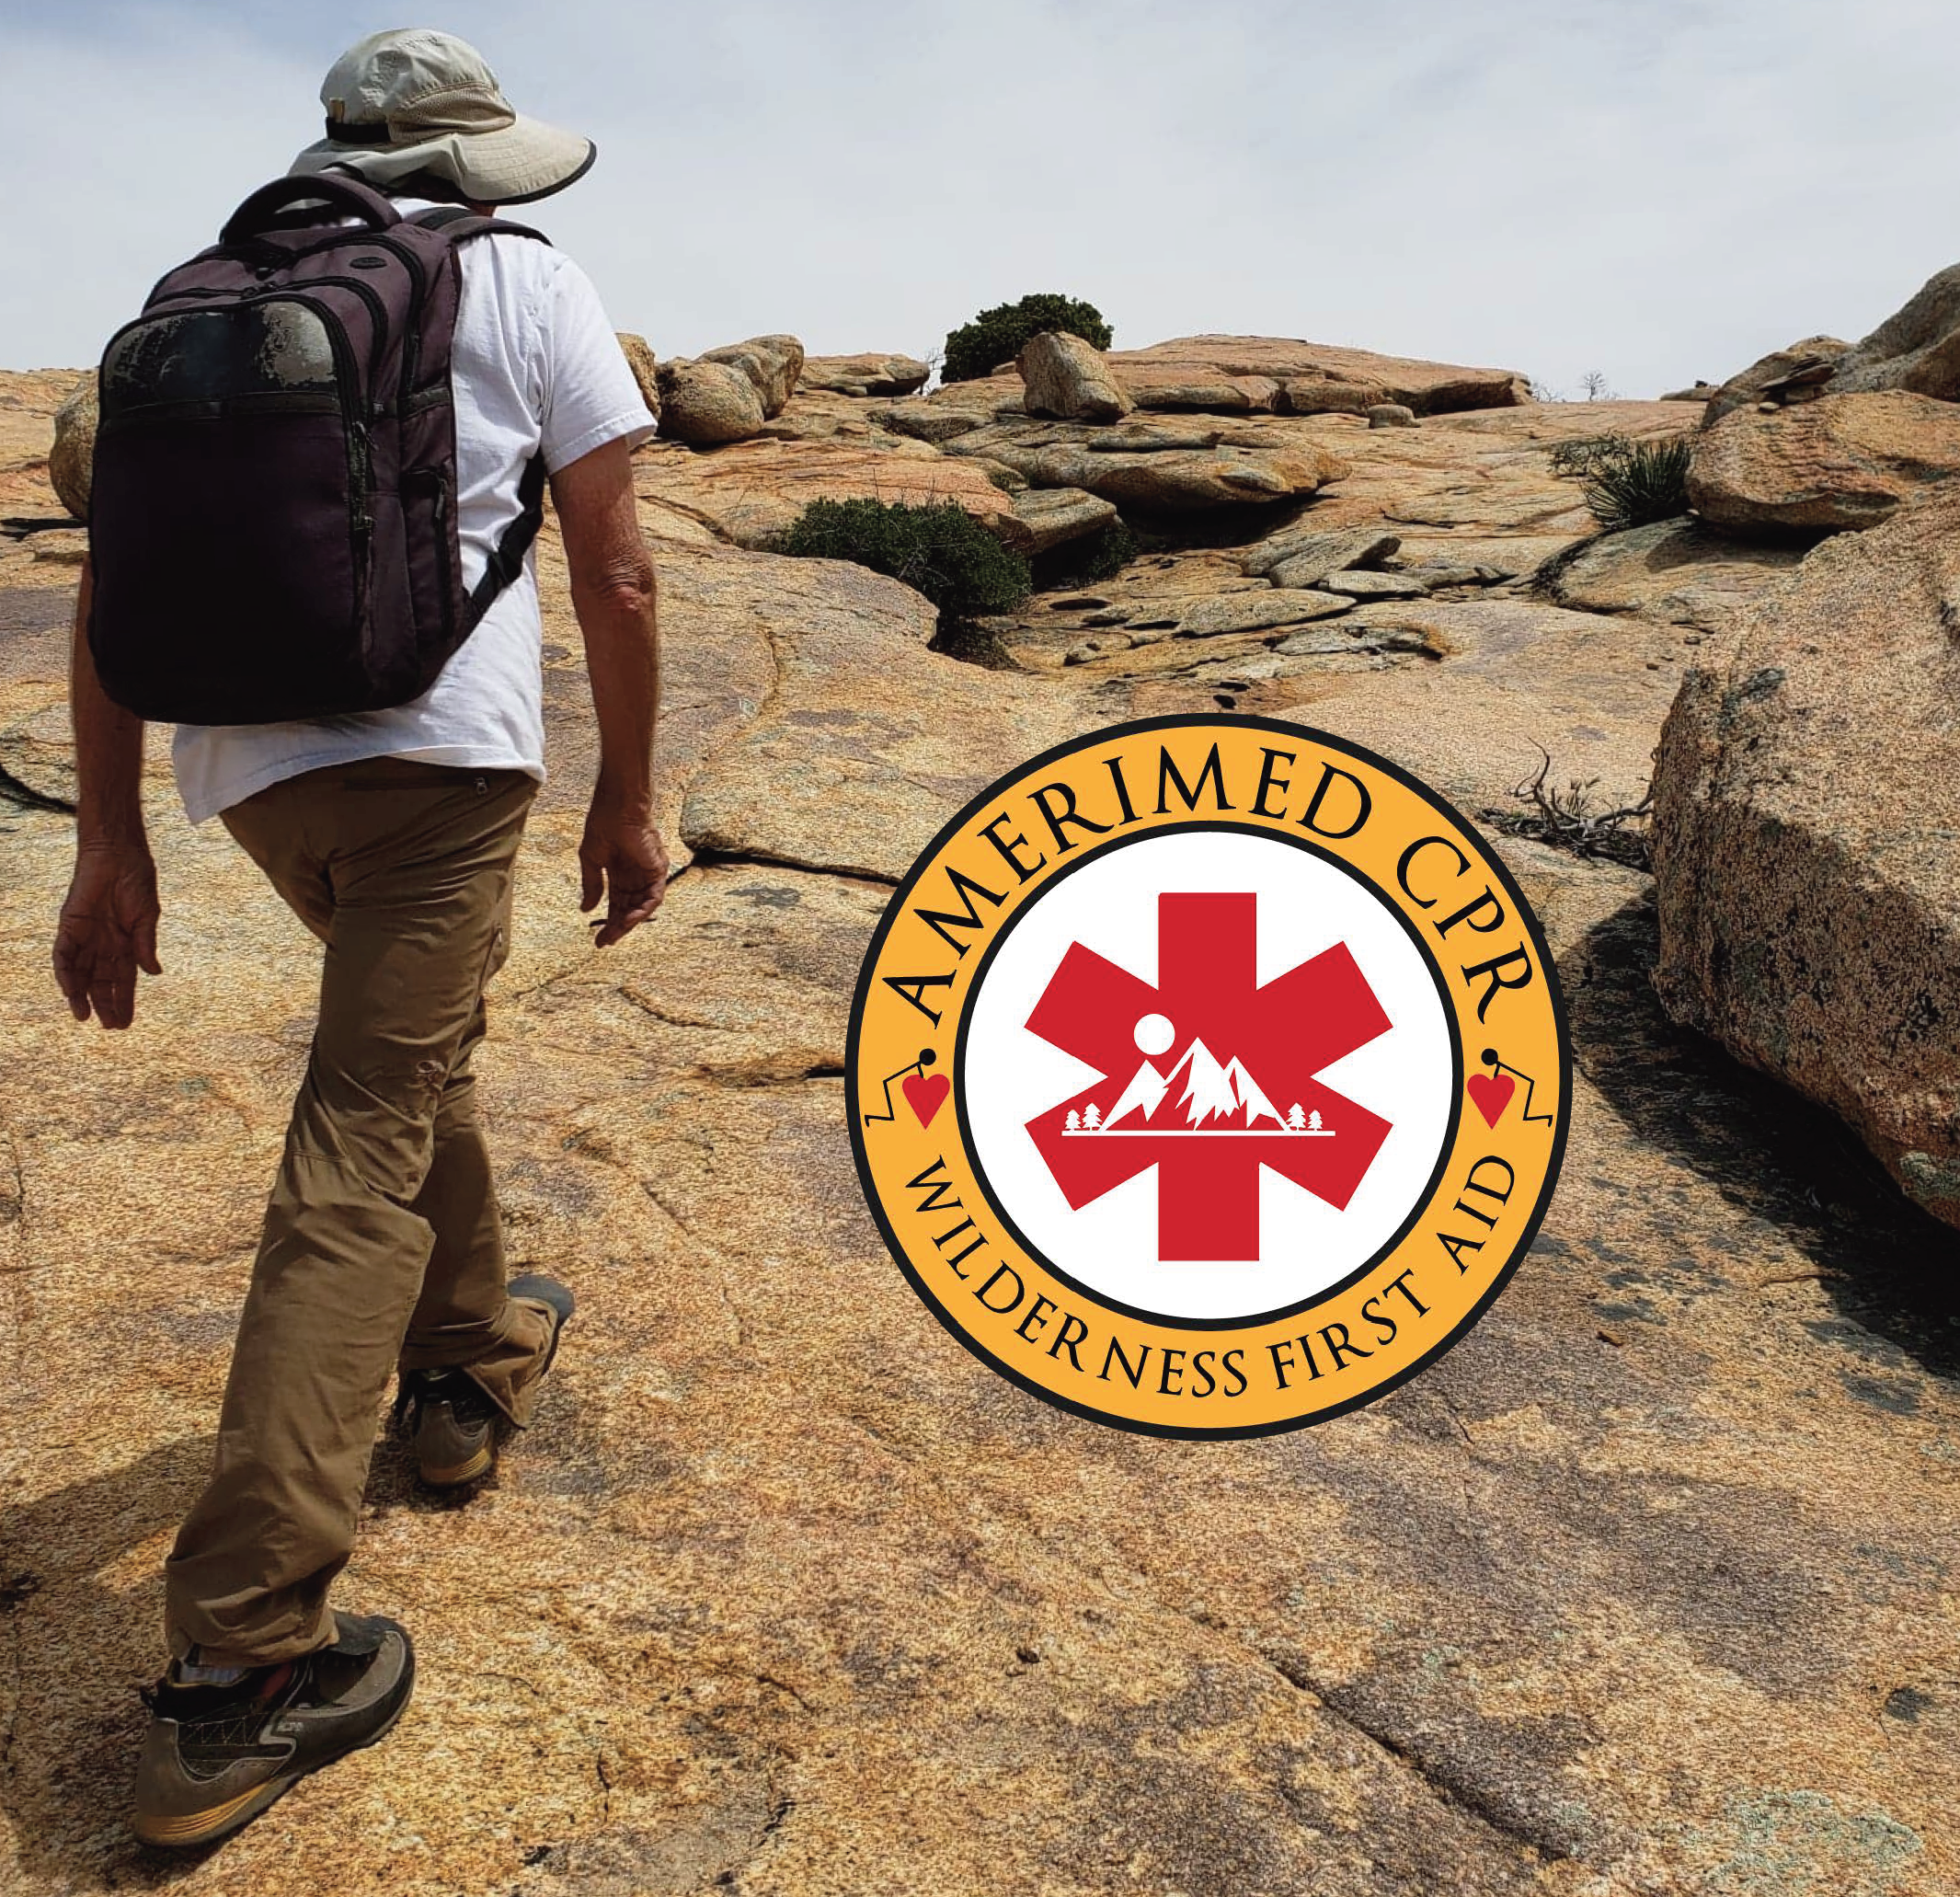 2020 Wilderness First Aid Schedule Now Available